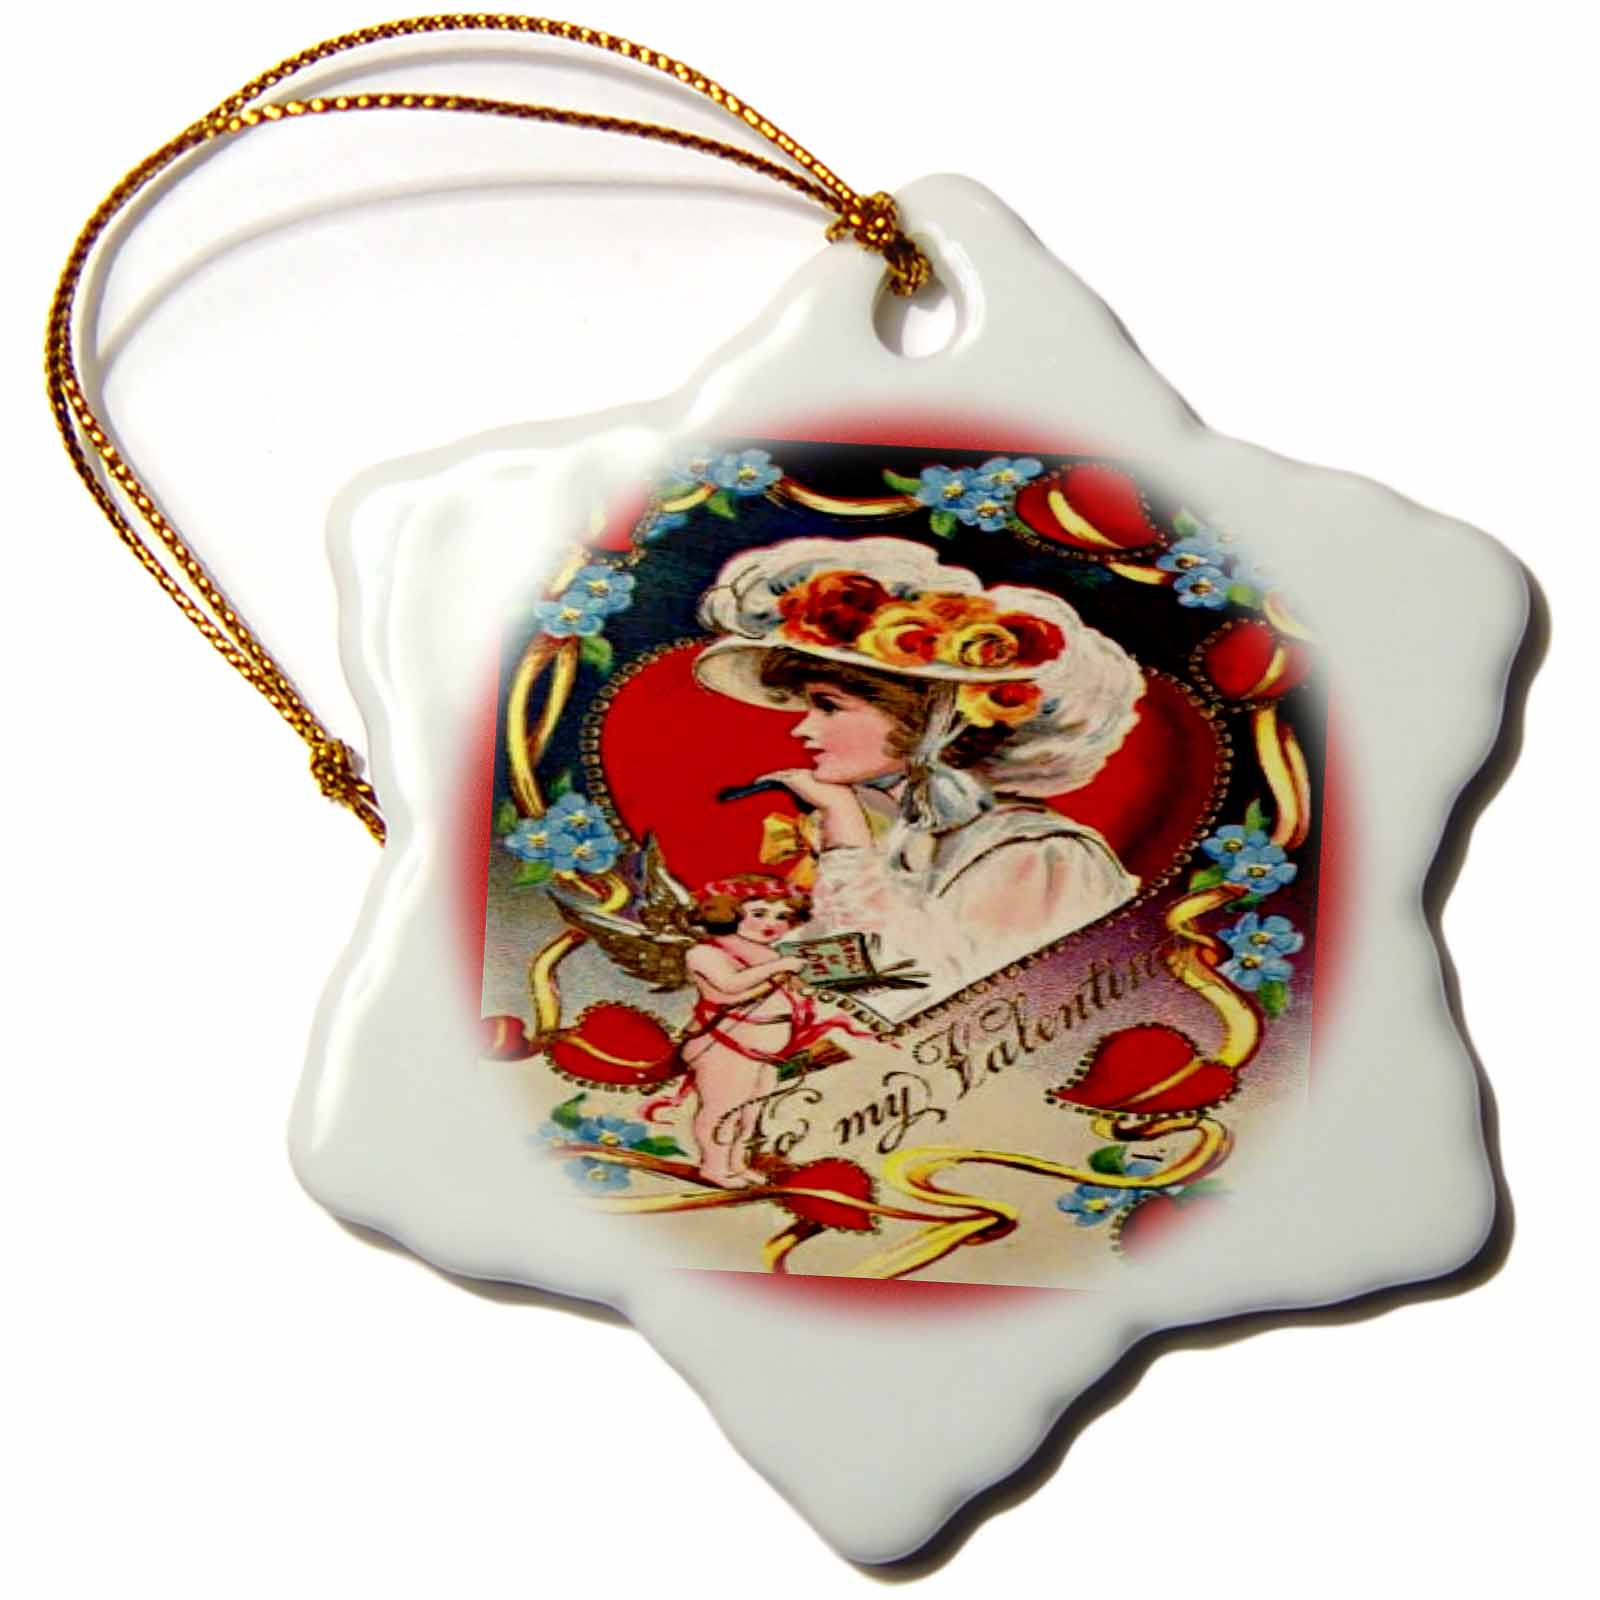 3dRose Vintage Valentine Day Lady, Snowflake Ornament, Porcelain, 3-inch